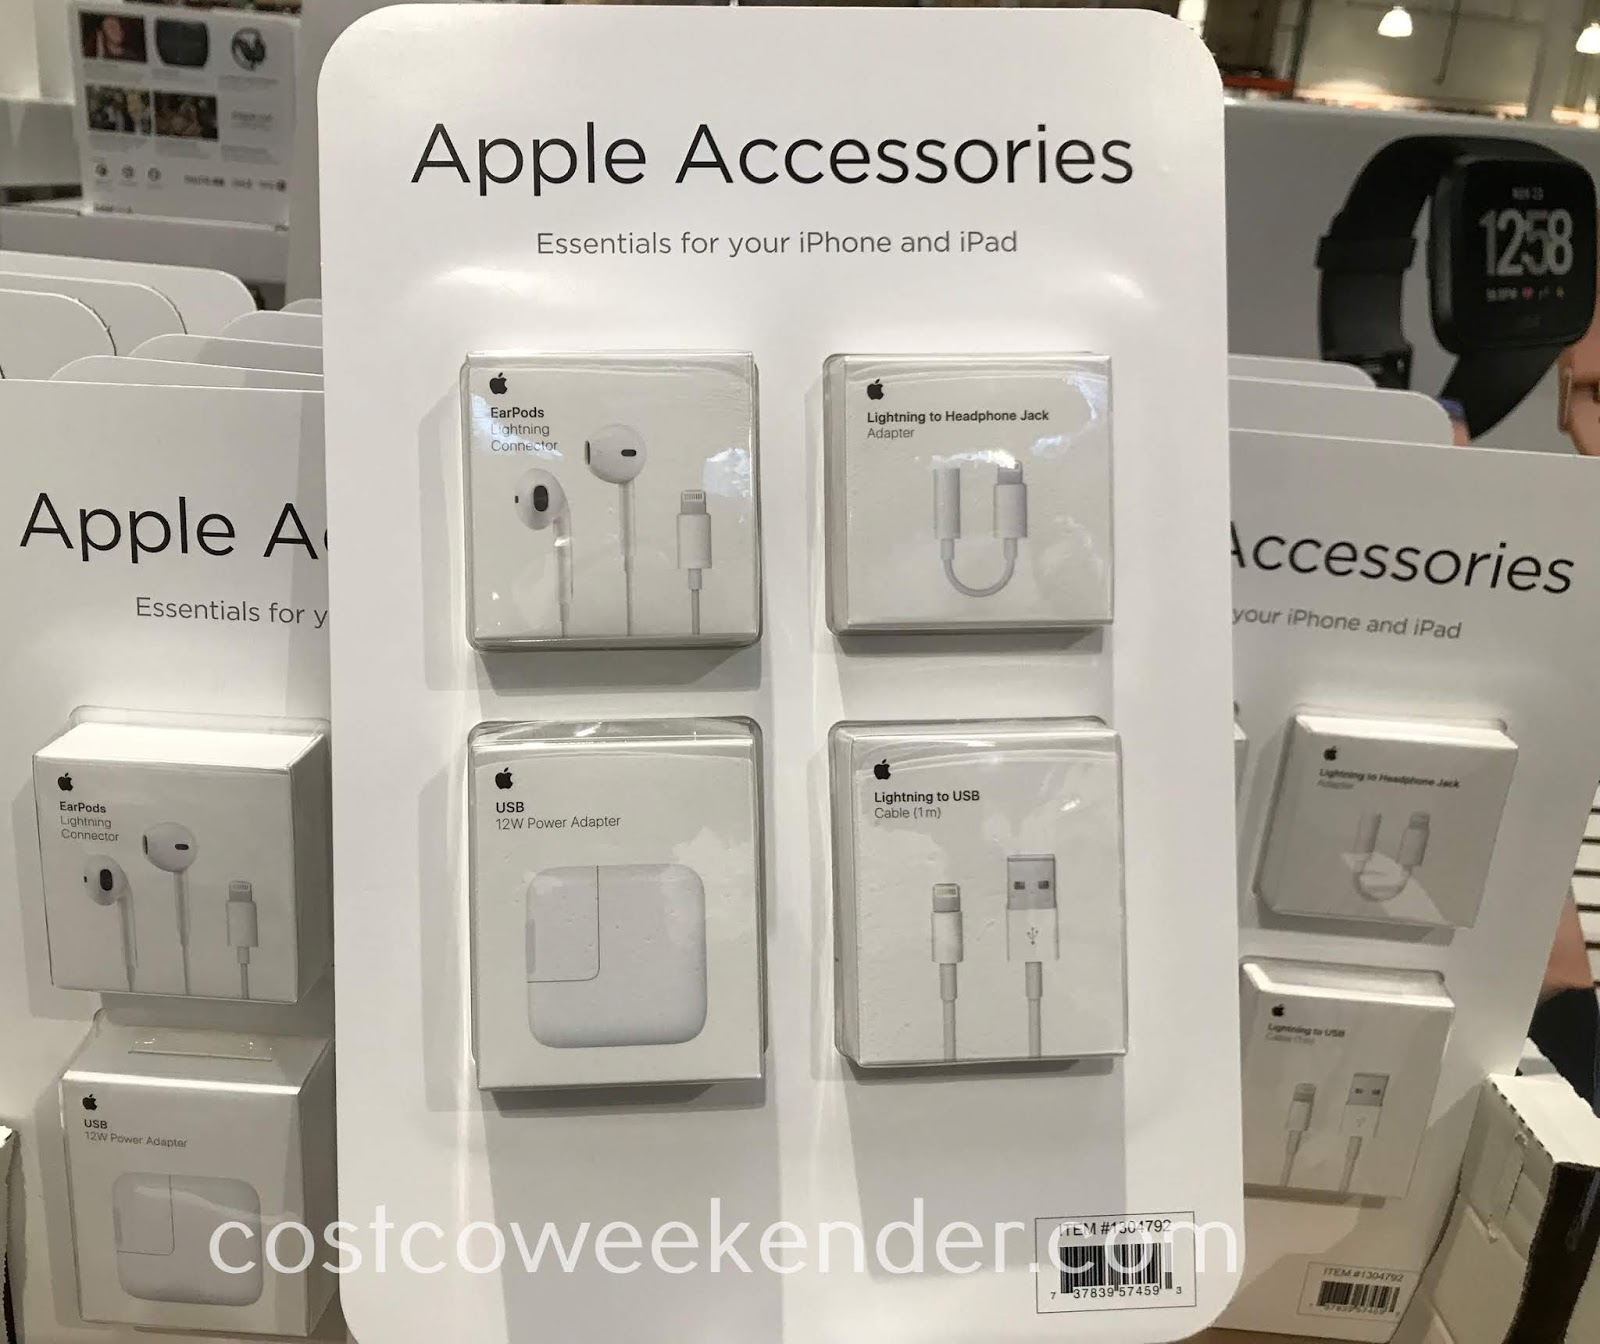 Get the most out of your iPhone or iPad with the Apple Accessory Bundle